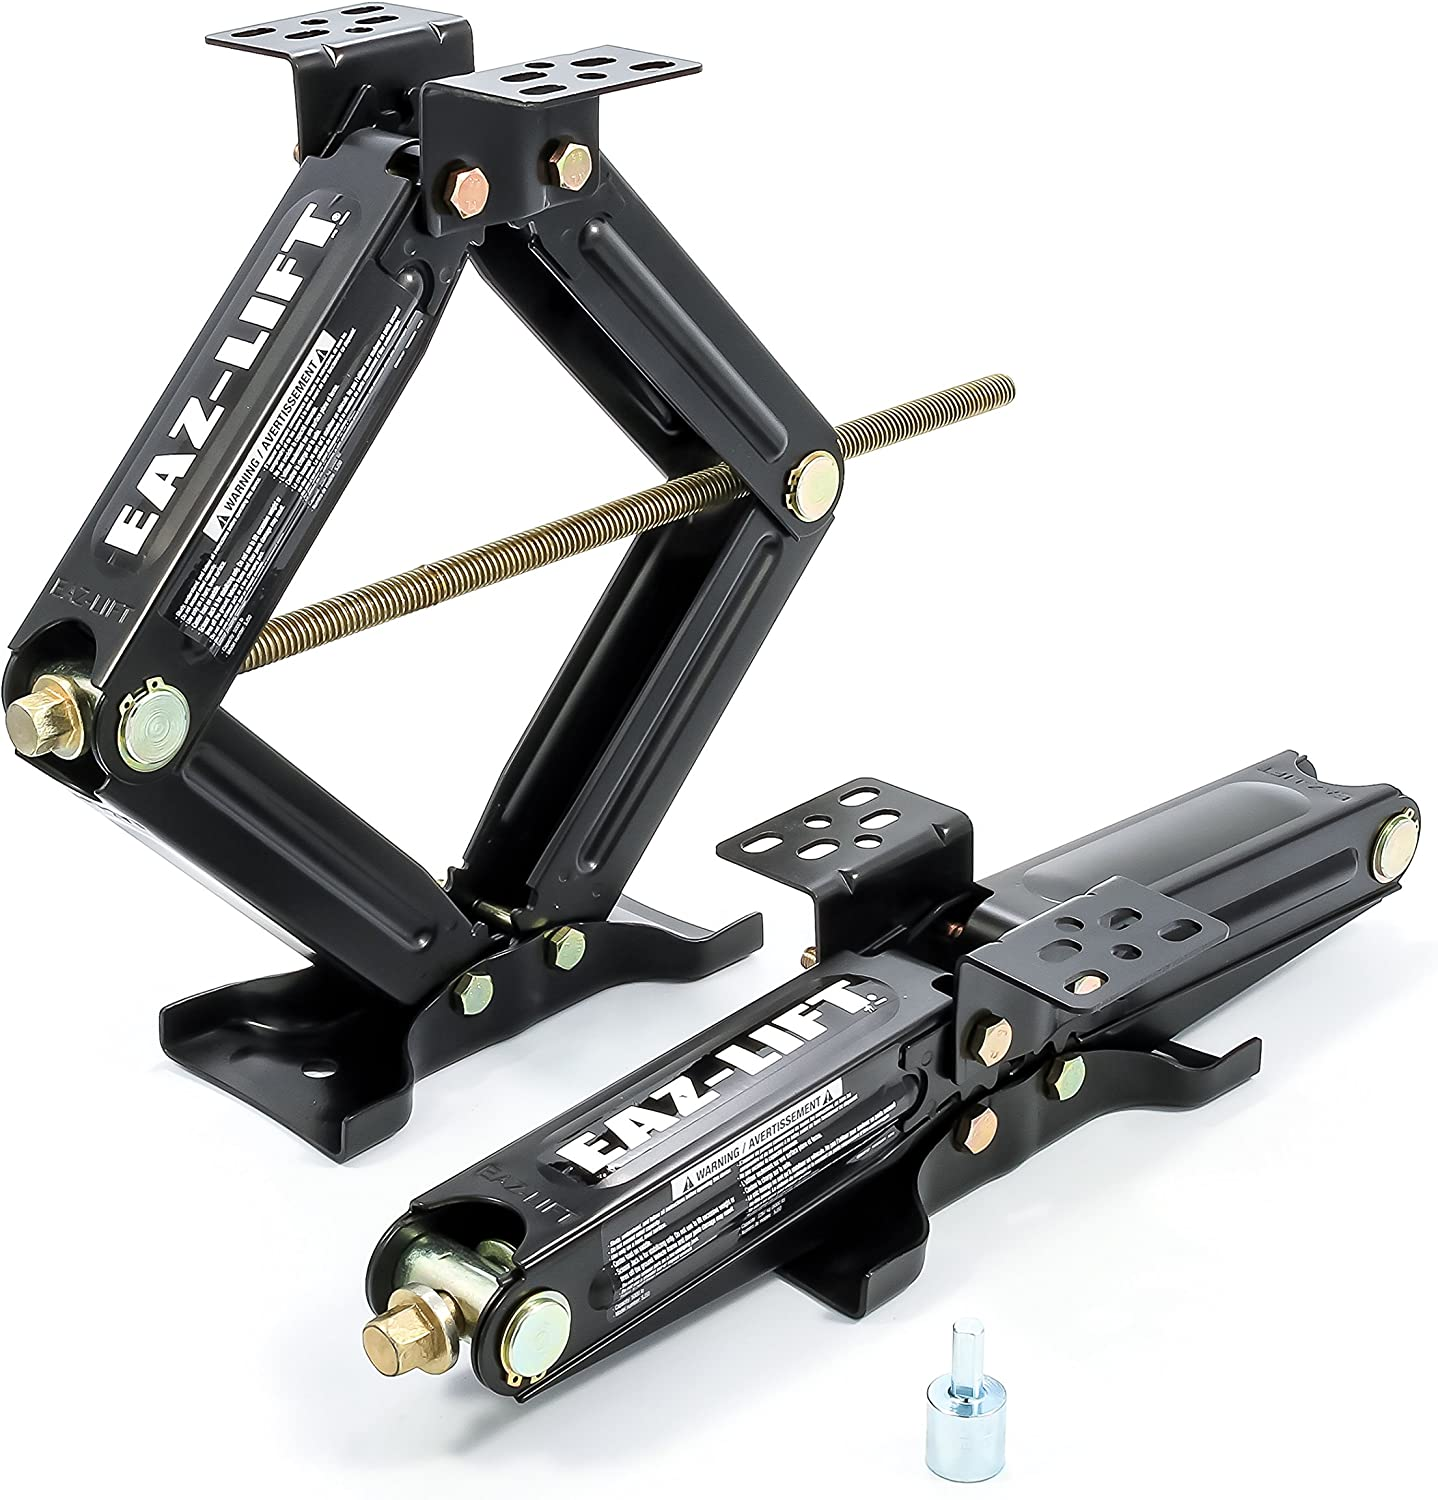 Fits Pop-Up Campers and Travel Trailers 48830 Eaz-Lift 24 RV Stabilizing Scissor Jack Supports Up to 7,500 lb - 2 Pack